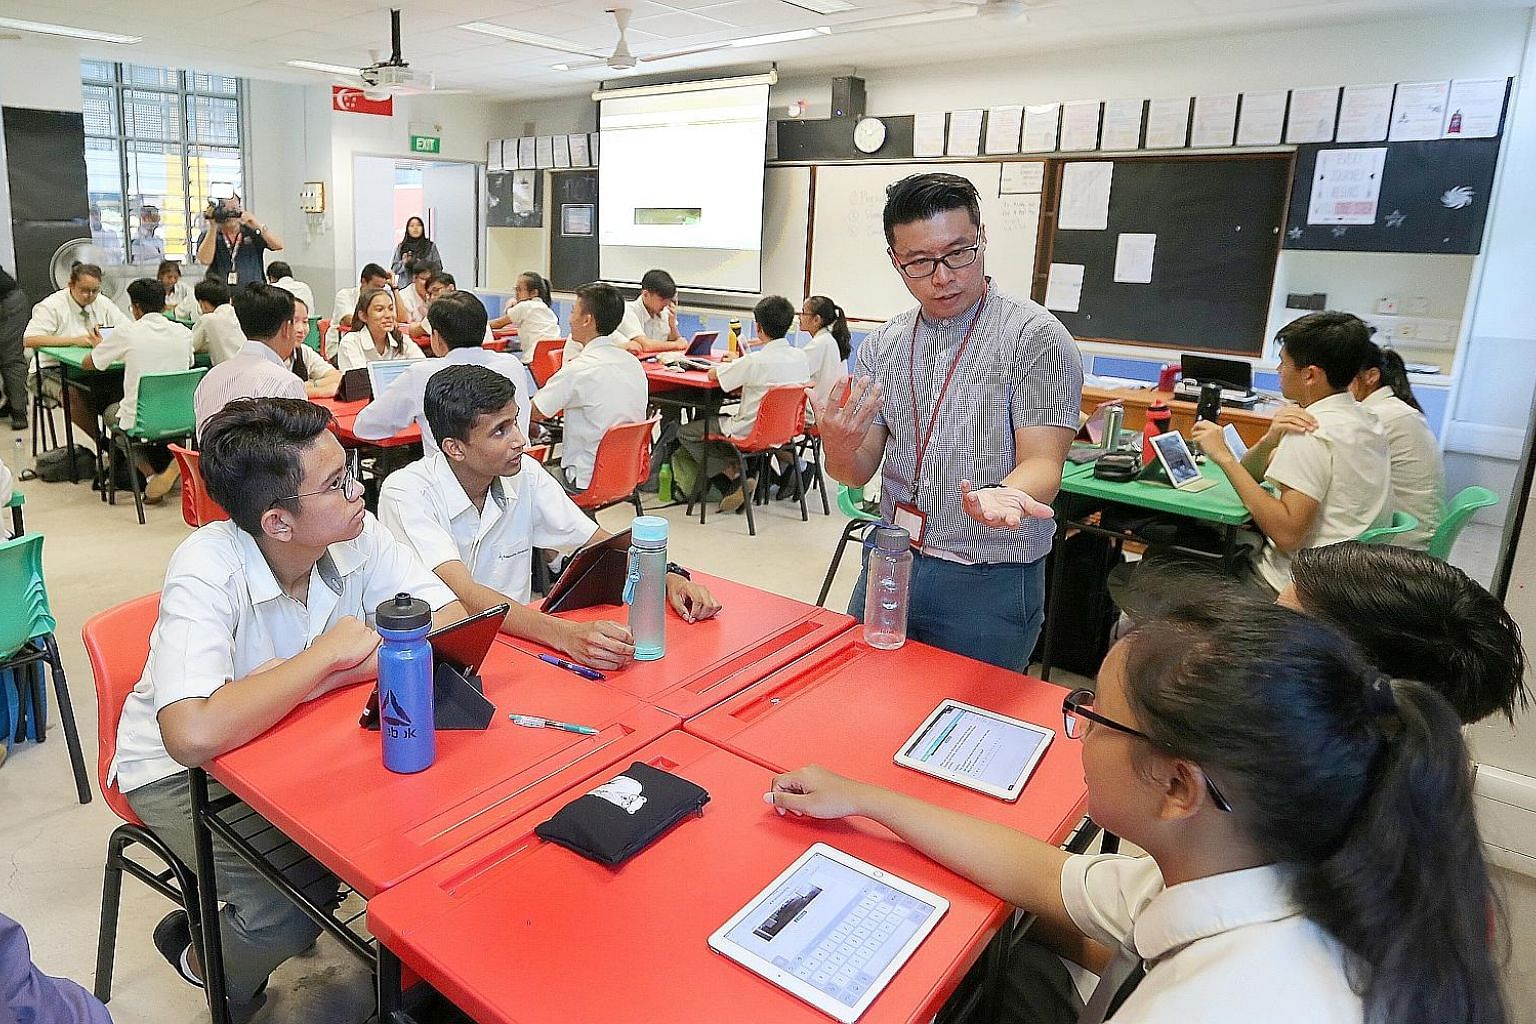 Social studies teacher Tay Peiyong with his students from Admiralty Secondary School on Wednesday. The school is one of 62 where the Singapore Student Learning Space is being piloted.